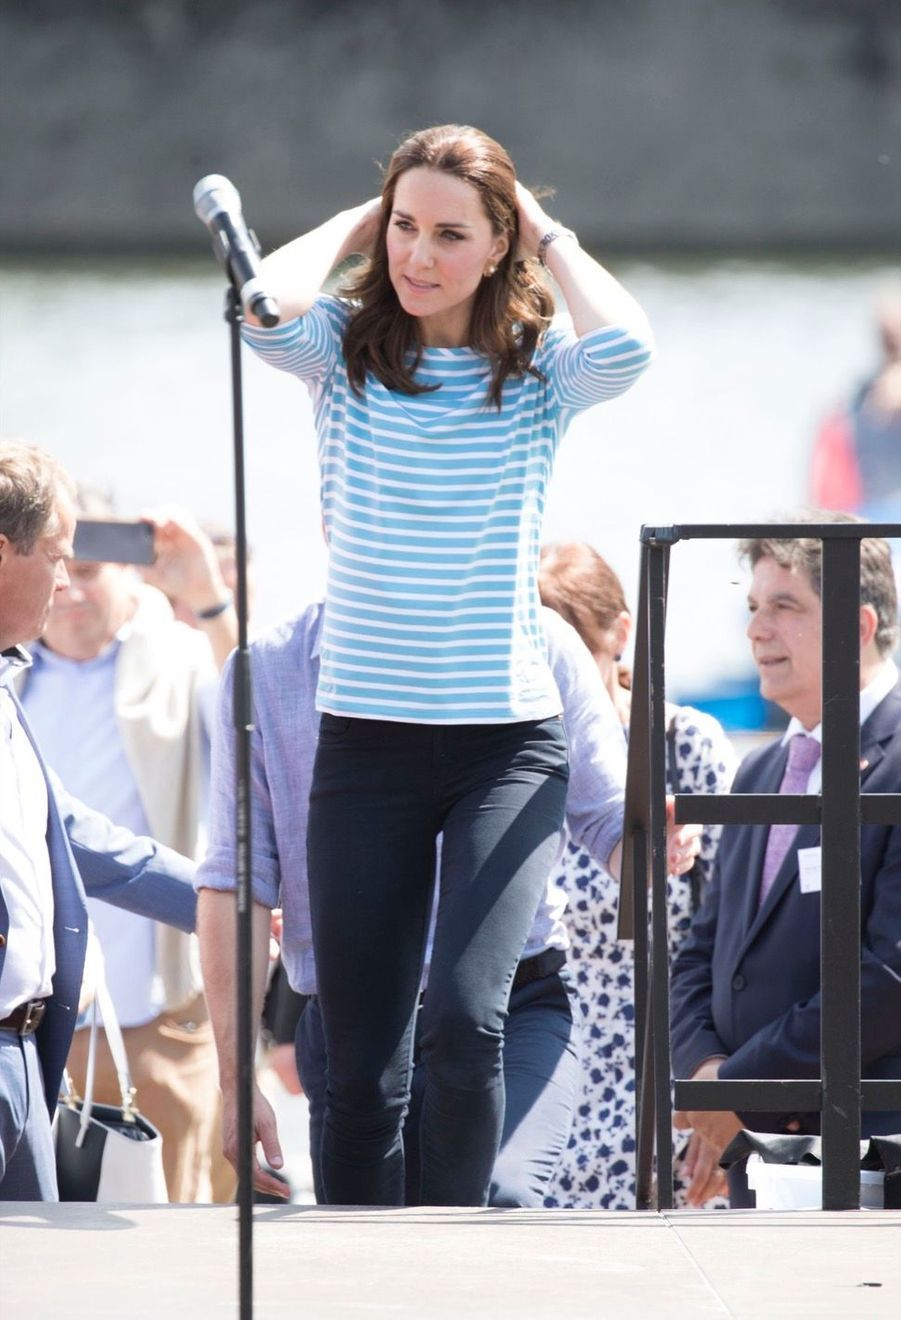 Kate Middleton Et William Font De L'aviron À Heidelberg En Allemagne 4